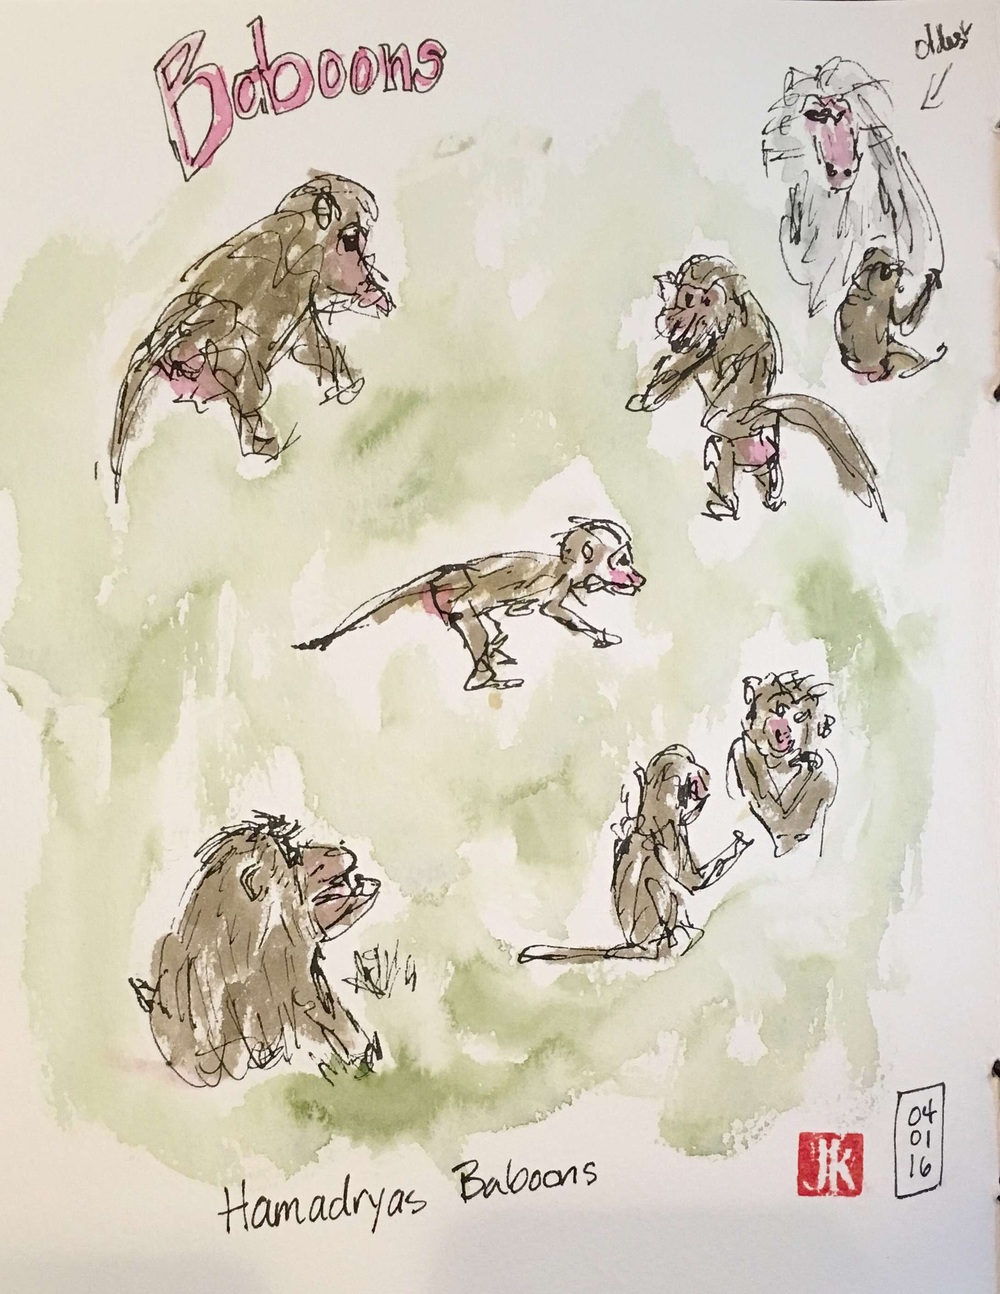 The baboons were full of playfulness.